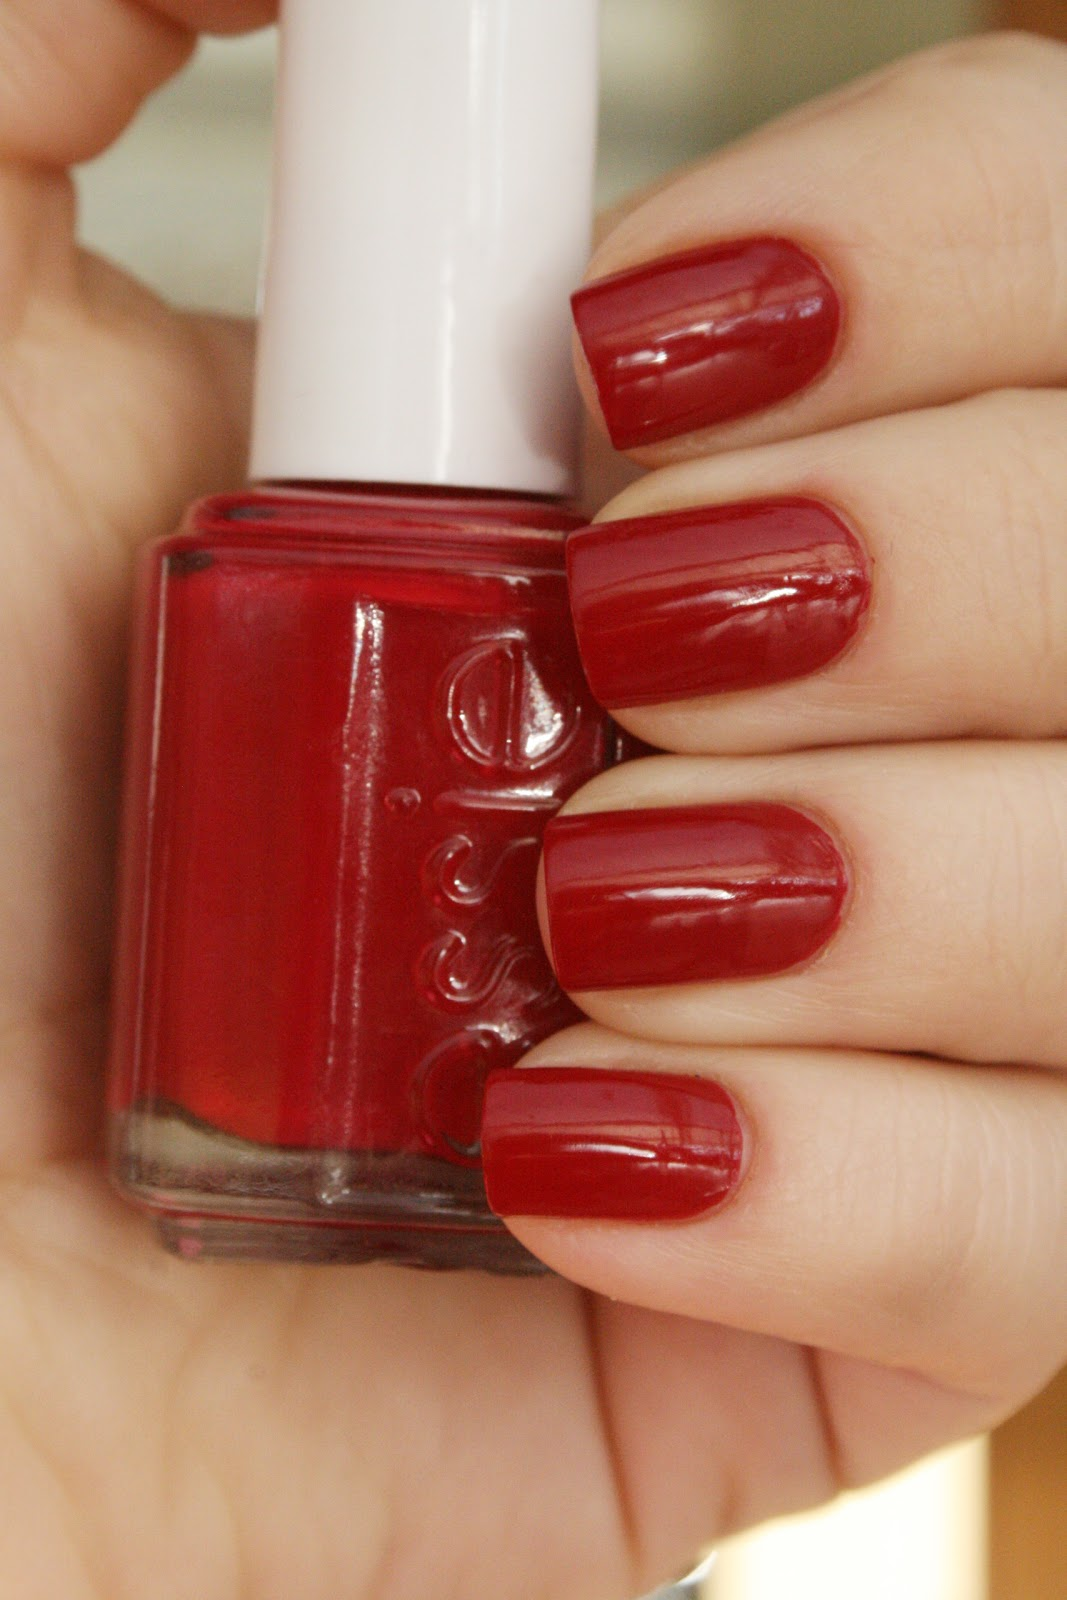 Nails by Catharina: Essie Size matters